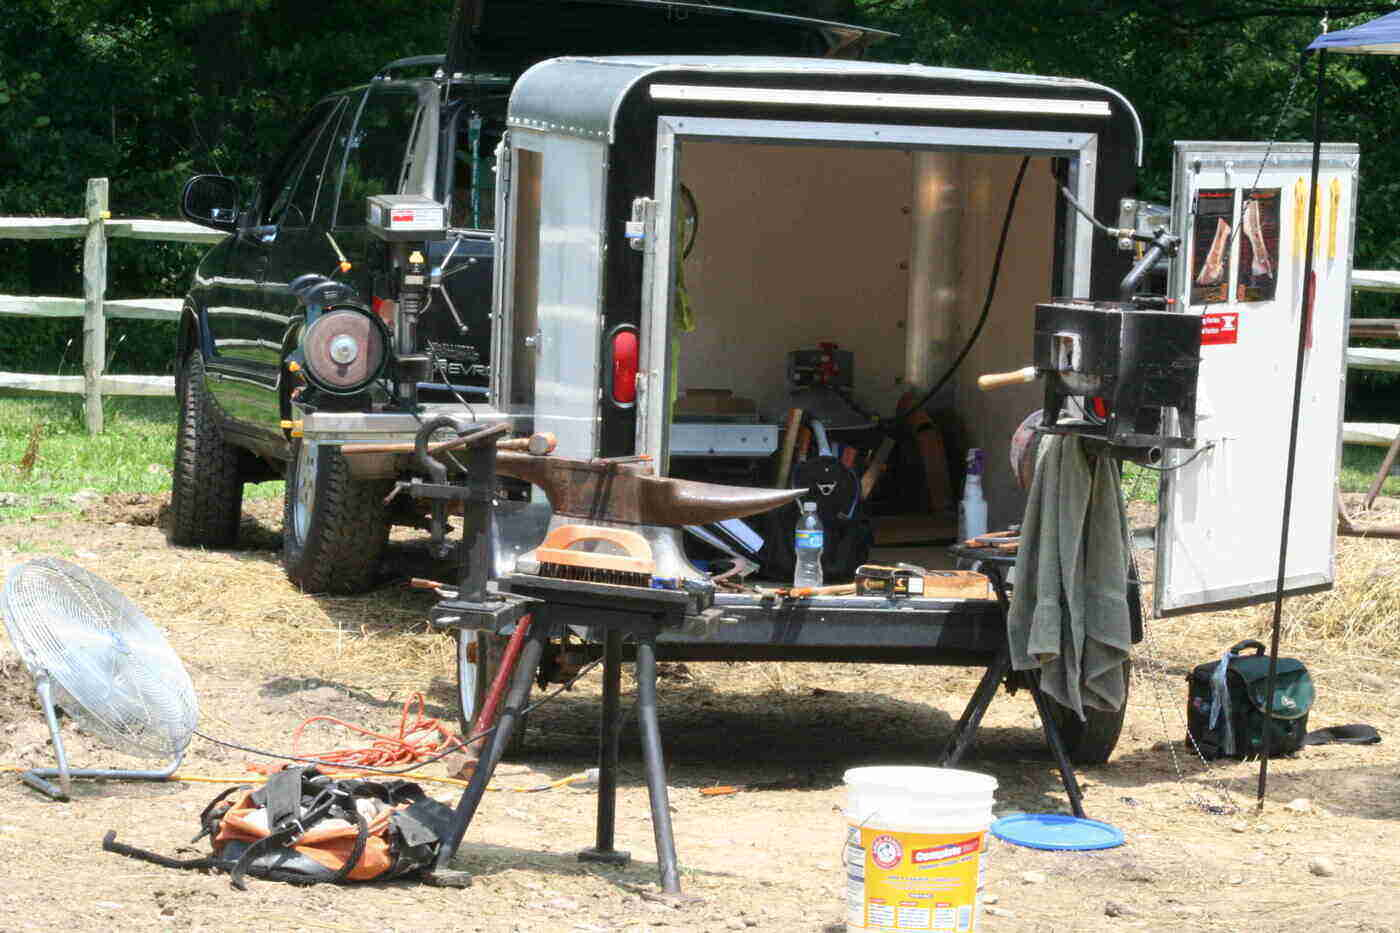 back of open farrier trailer with tools and supplies around - how to choose a farrier rig